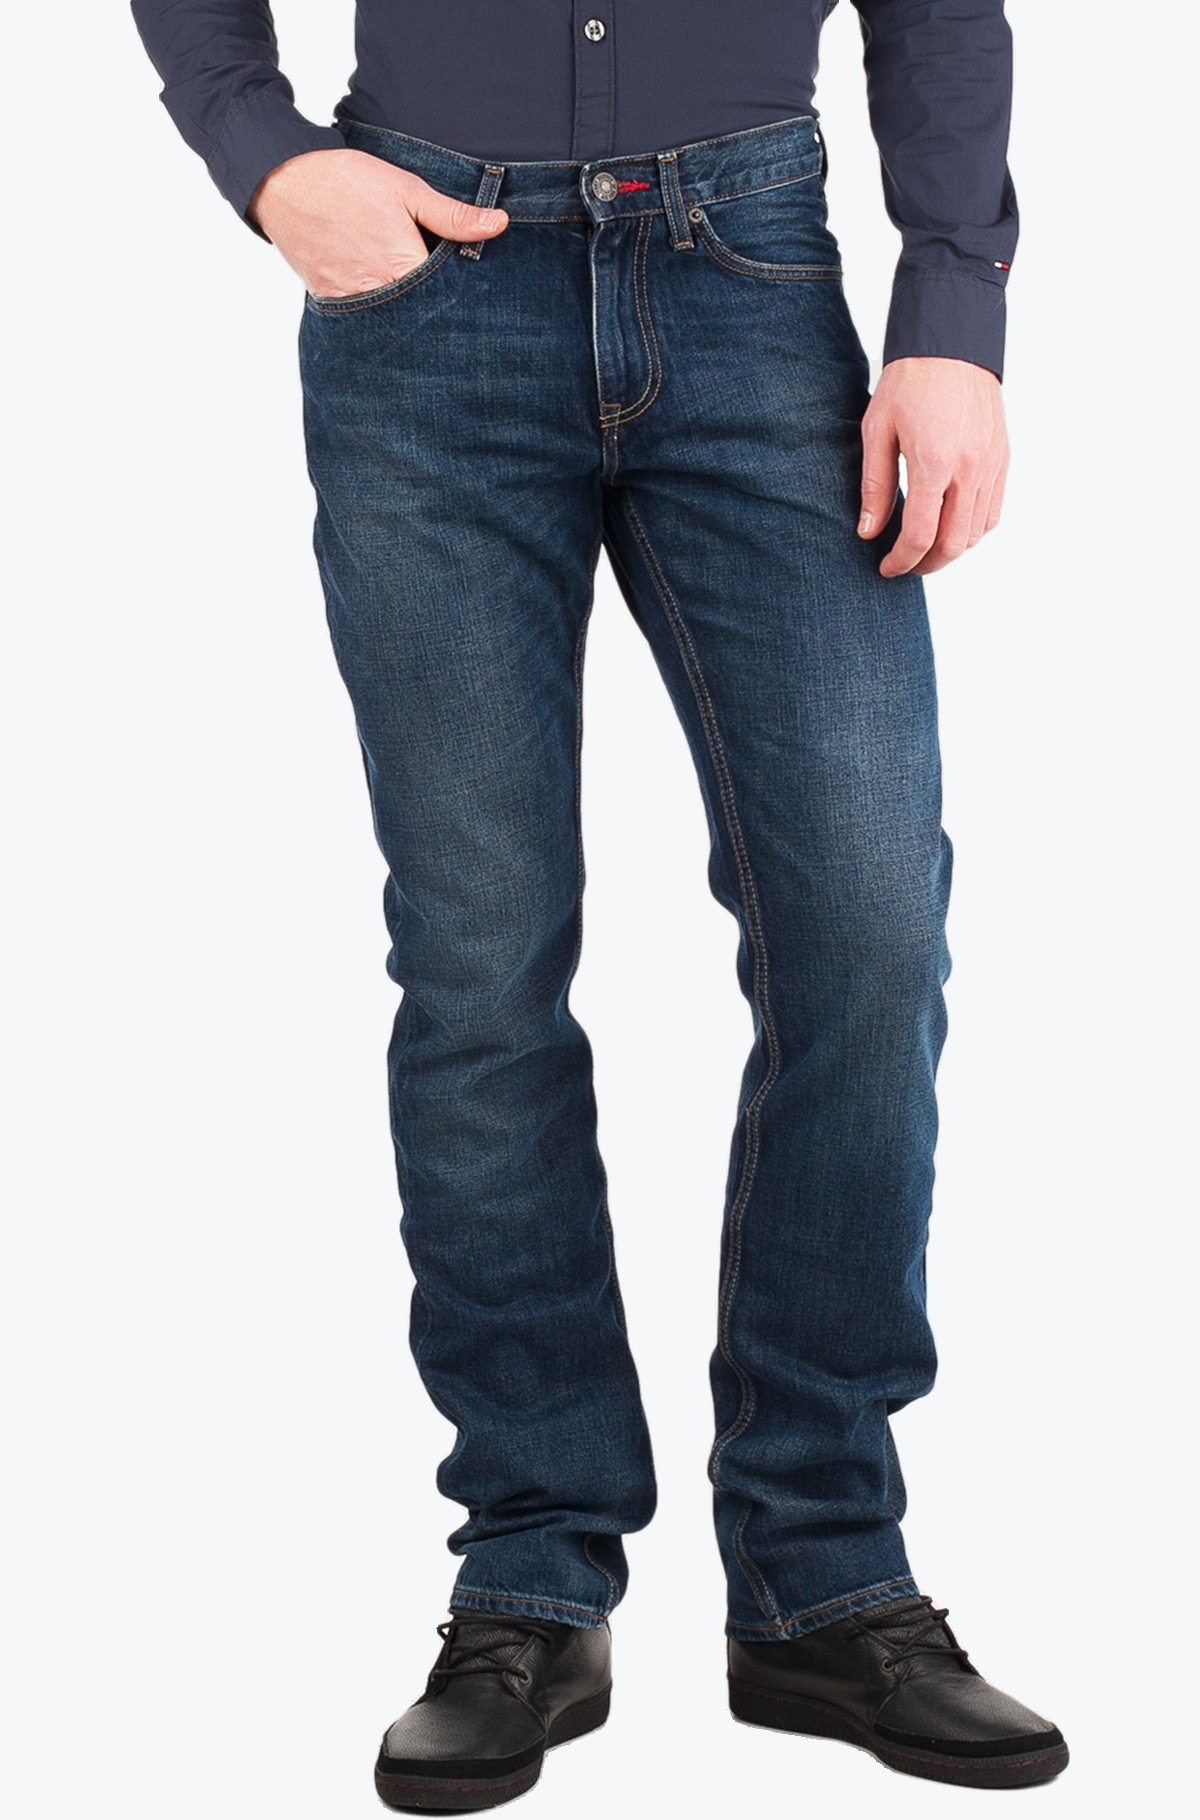 Jeans Mercer B Middle-full-1